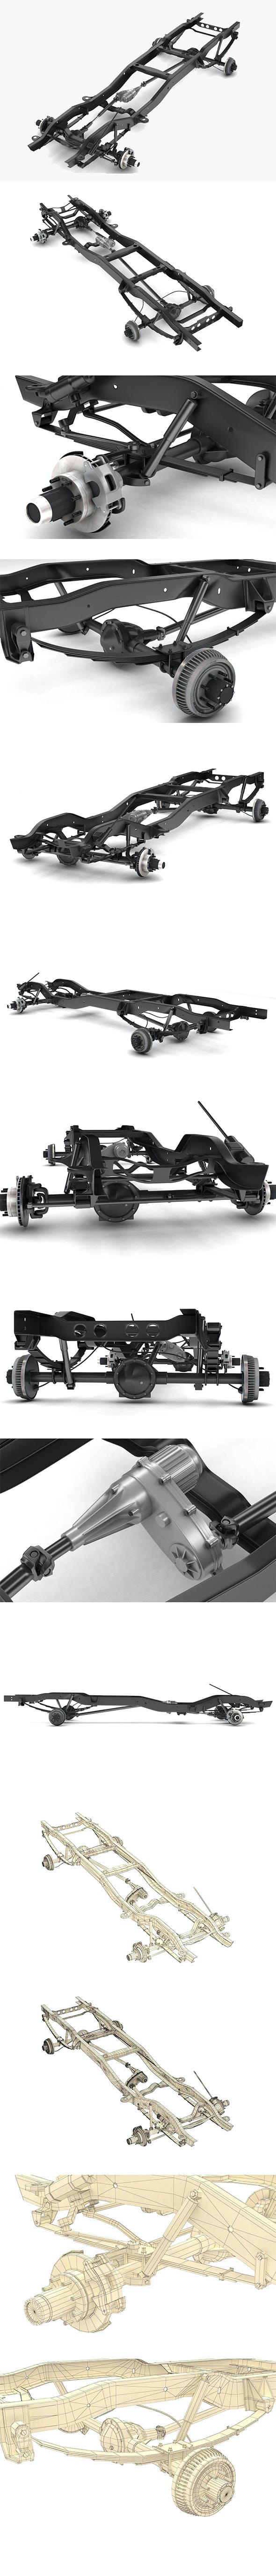 PICKUP TRUCK CHASSIS 4WD - 3DOcean Item for Sale